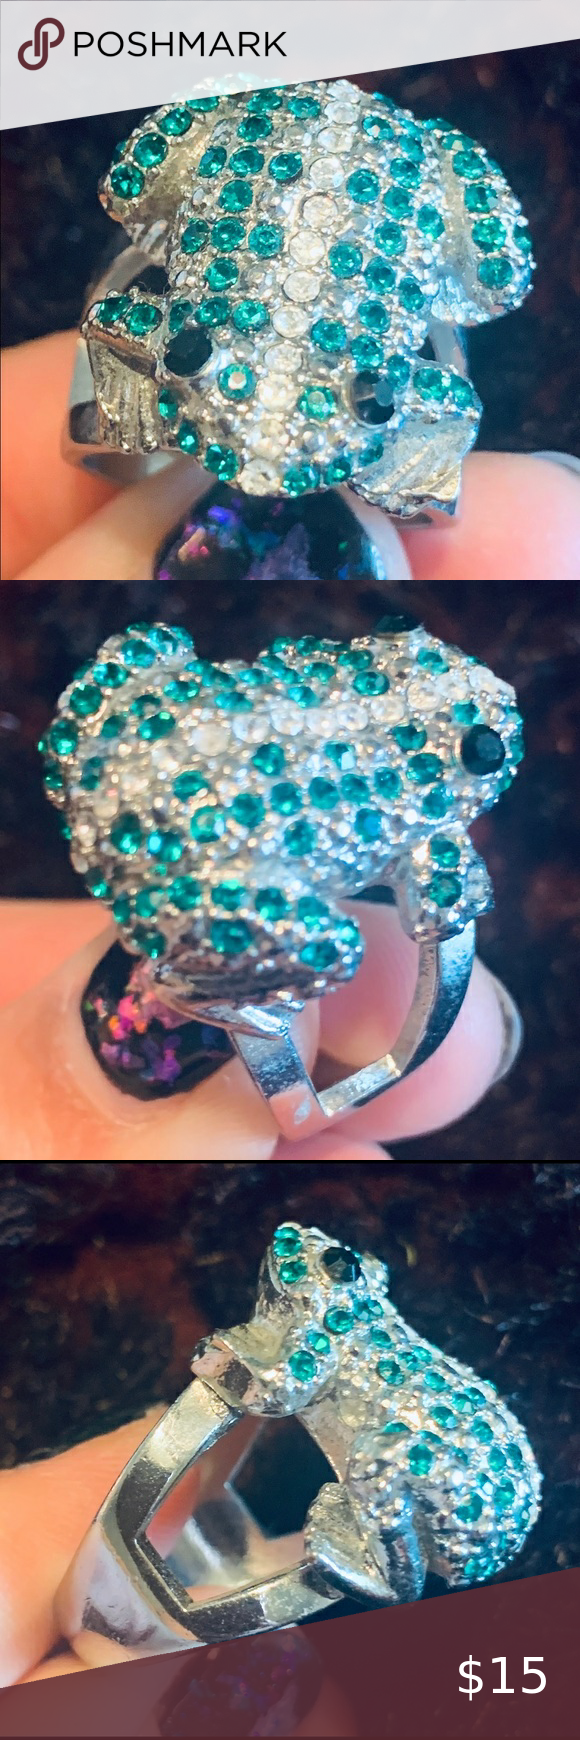 Check out this listing I just found on Poshmark: Green frog 🐸 ring silver nickel free size 9. #shopmycloset #poshmark #shopping #style #pinitforlater #Jewelry